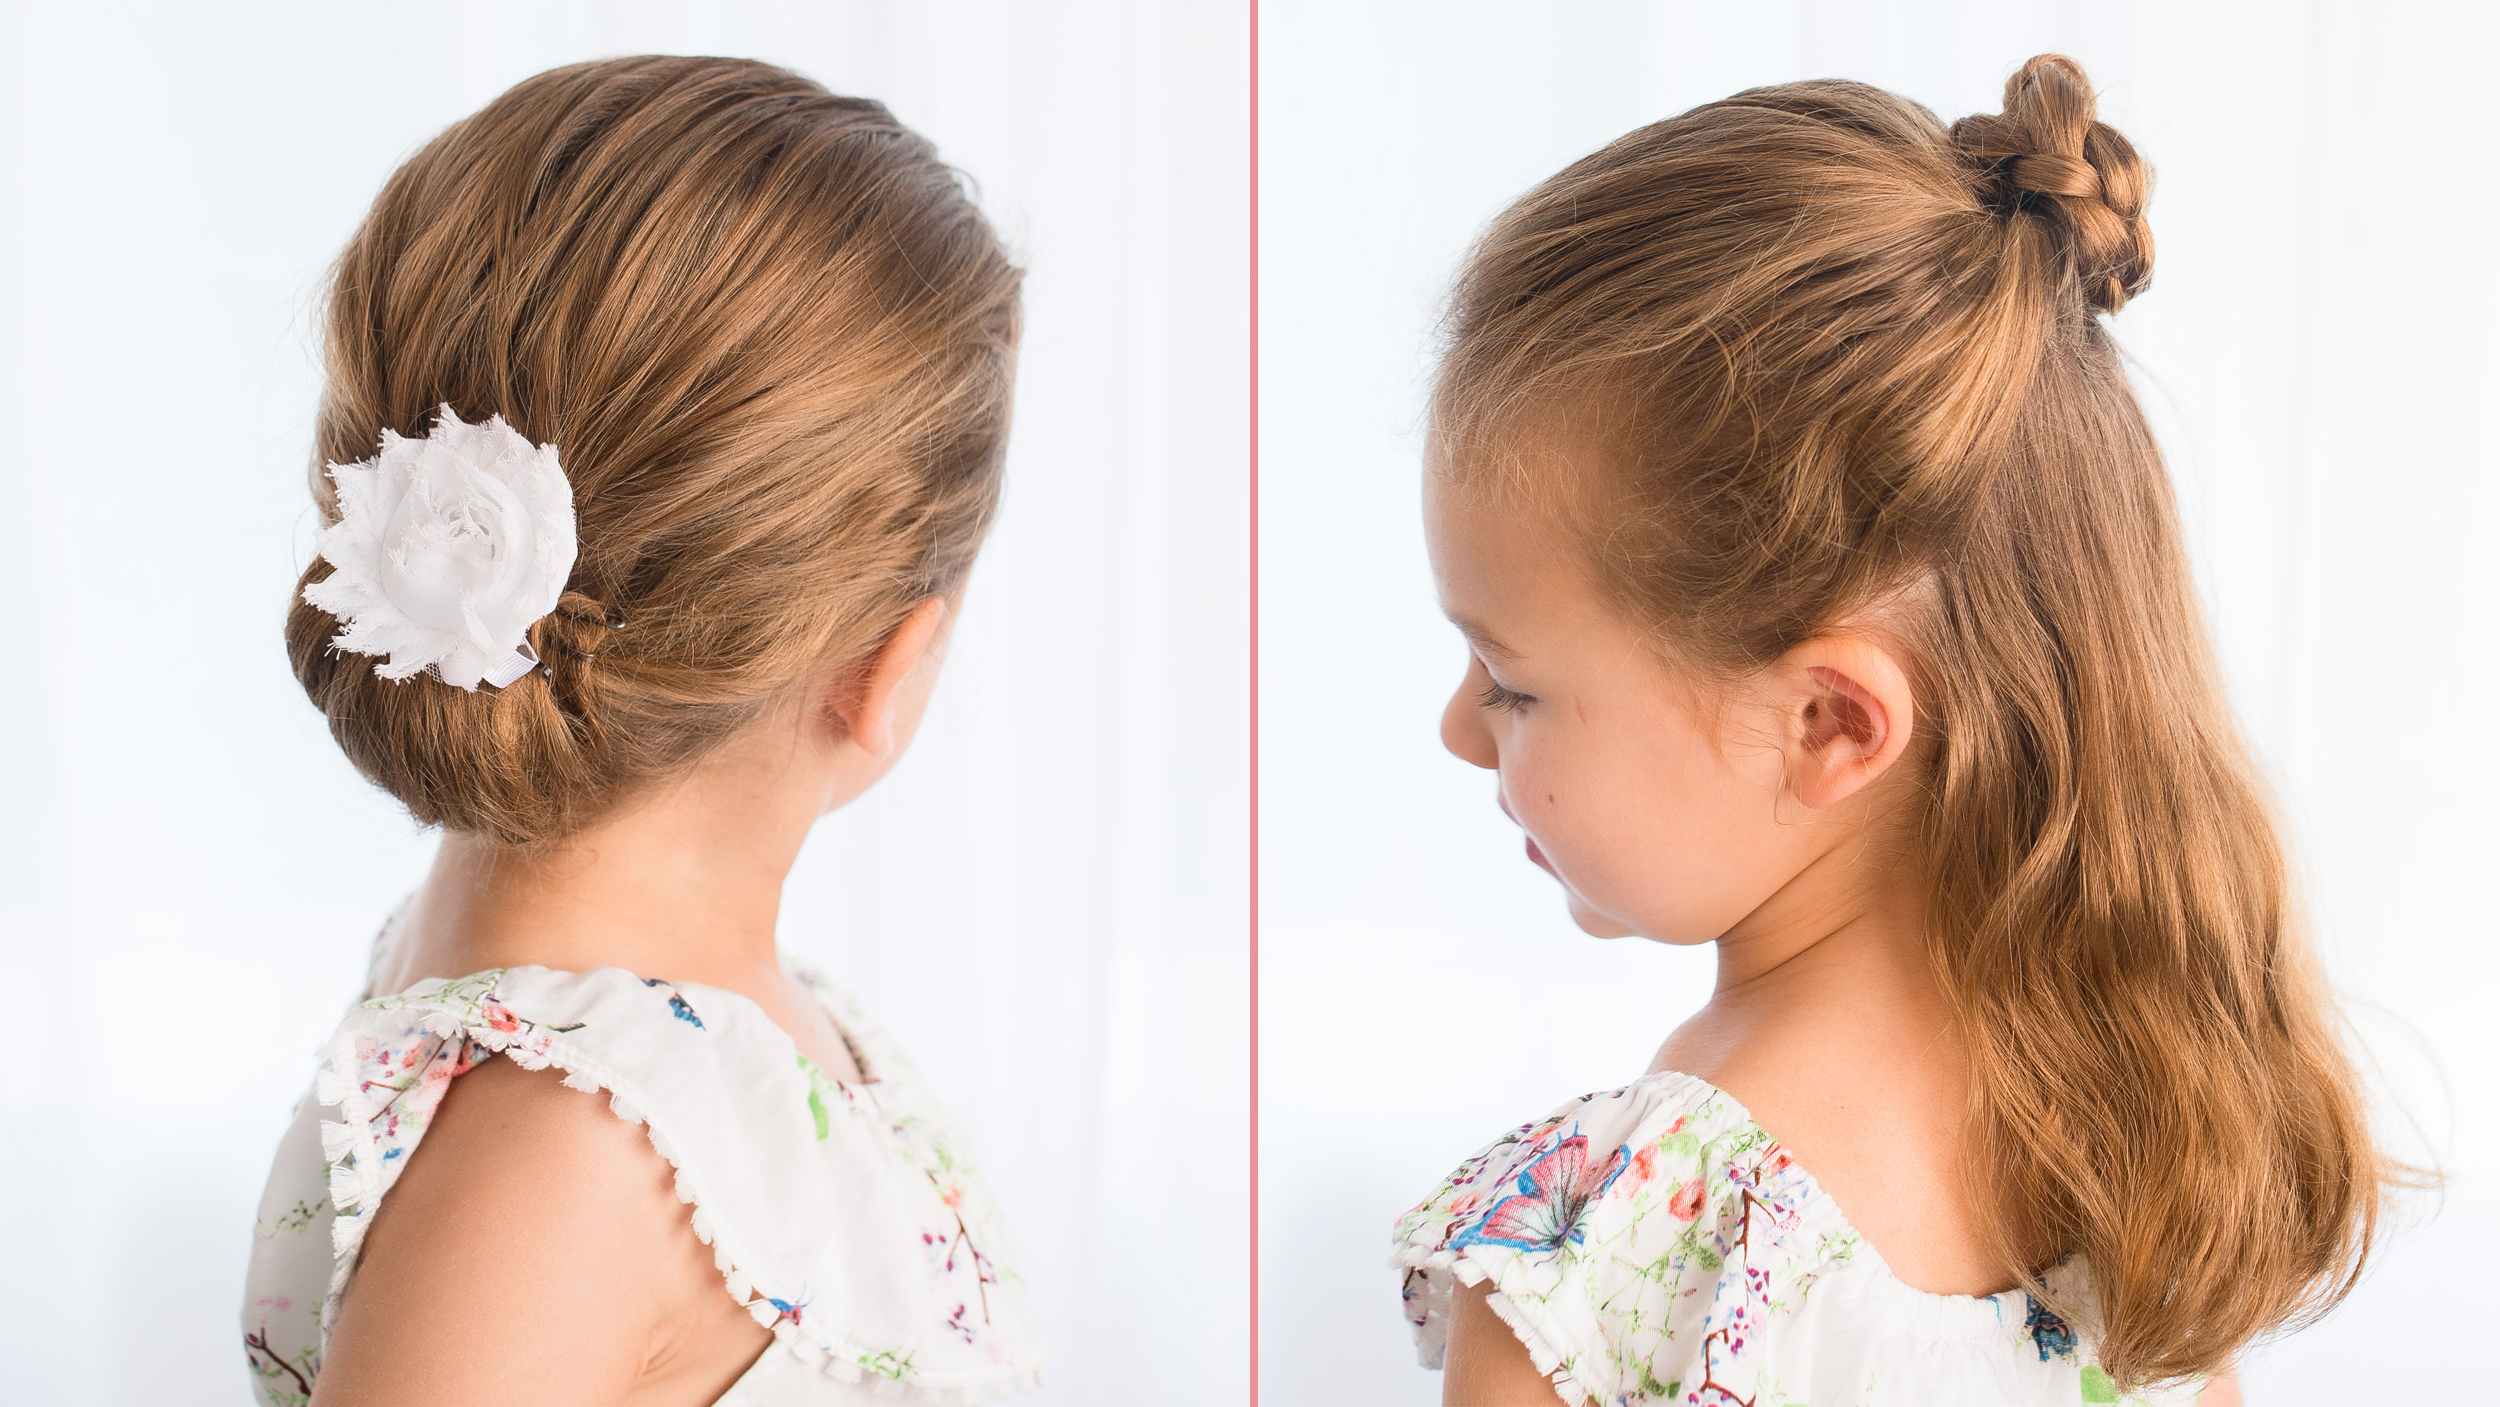 Kids Hair Styles Easy Hairstyles For Girls That You Can Create In Minutes